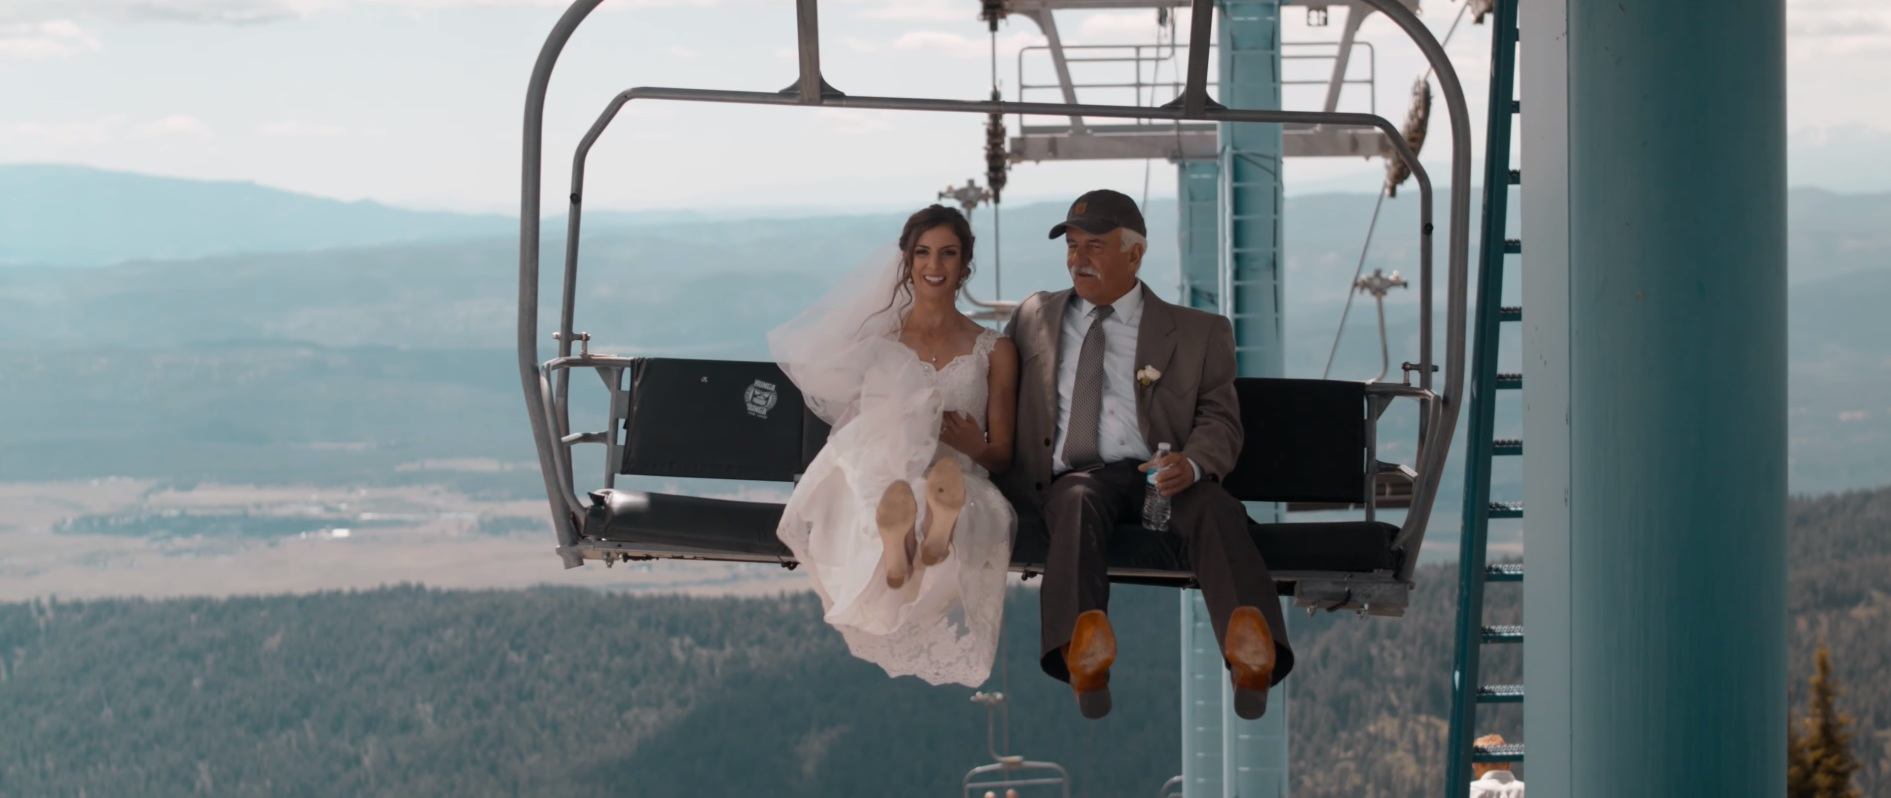 The bride being brought on her steel chariot! Now that's one adventurous ride, a view hundreds of feet in the air!